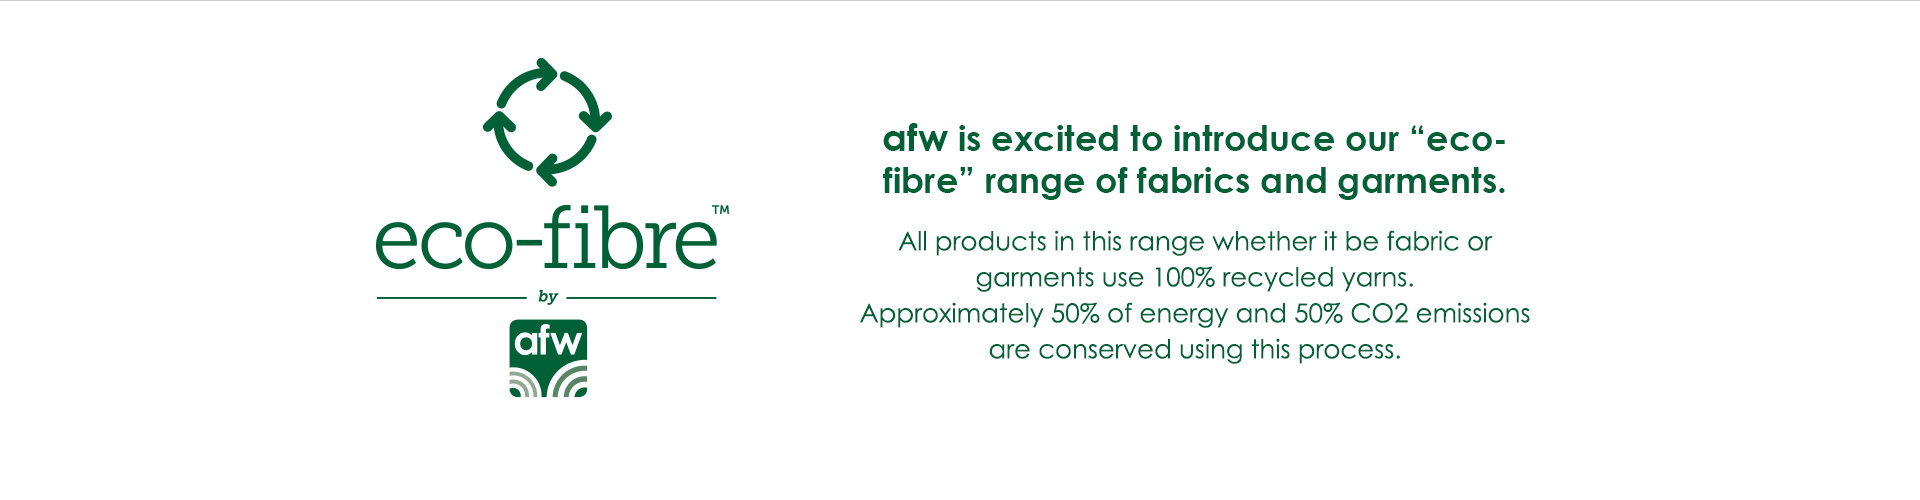 AFW are excited to introduce our eco-fibre range of fabrics and garments